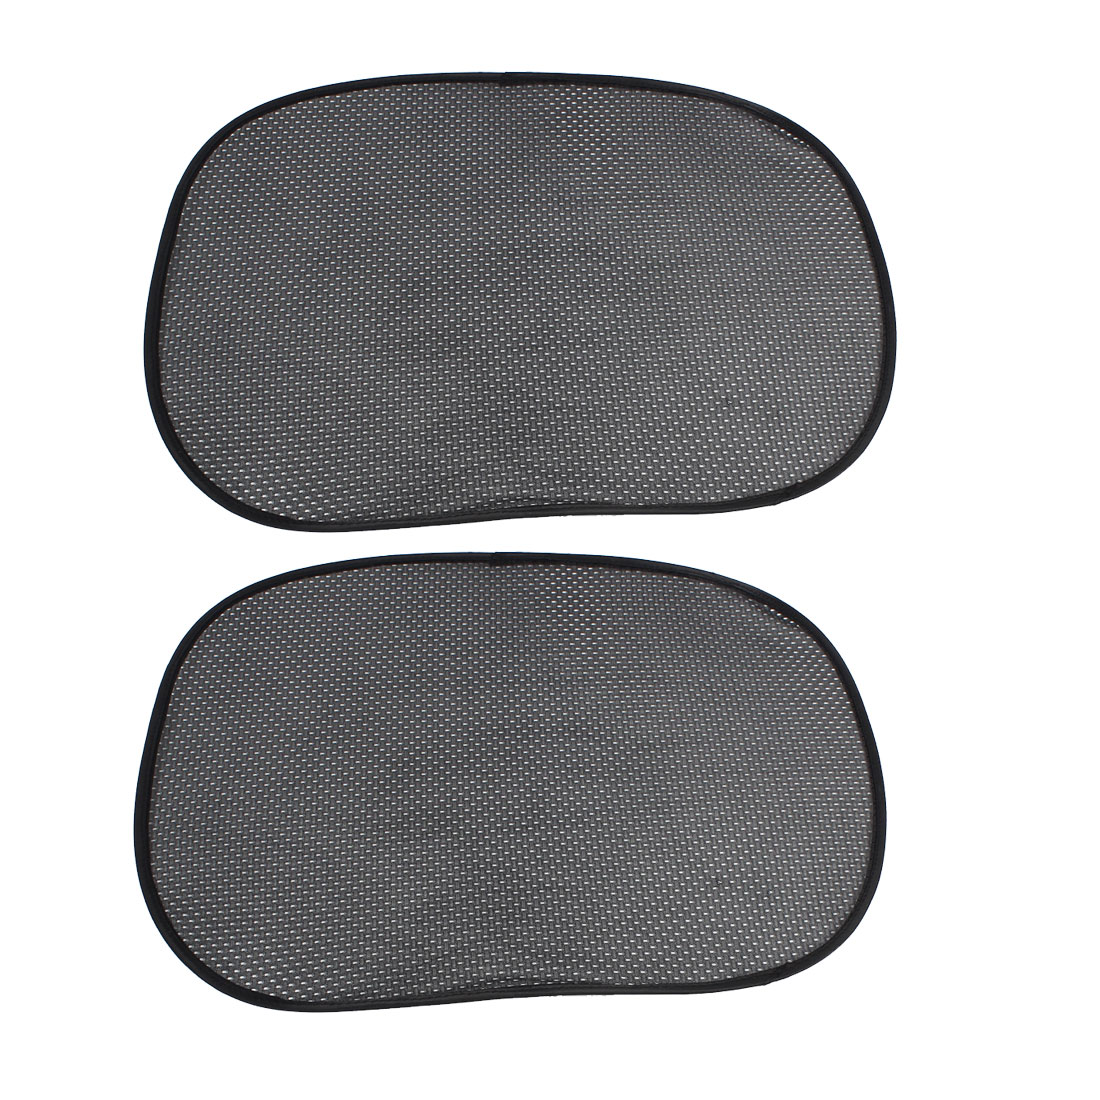 "2Pcs 22"" x 17"" Meshy Collapsible Car Side Window Sun Shade UV Protection Black for Baby"